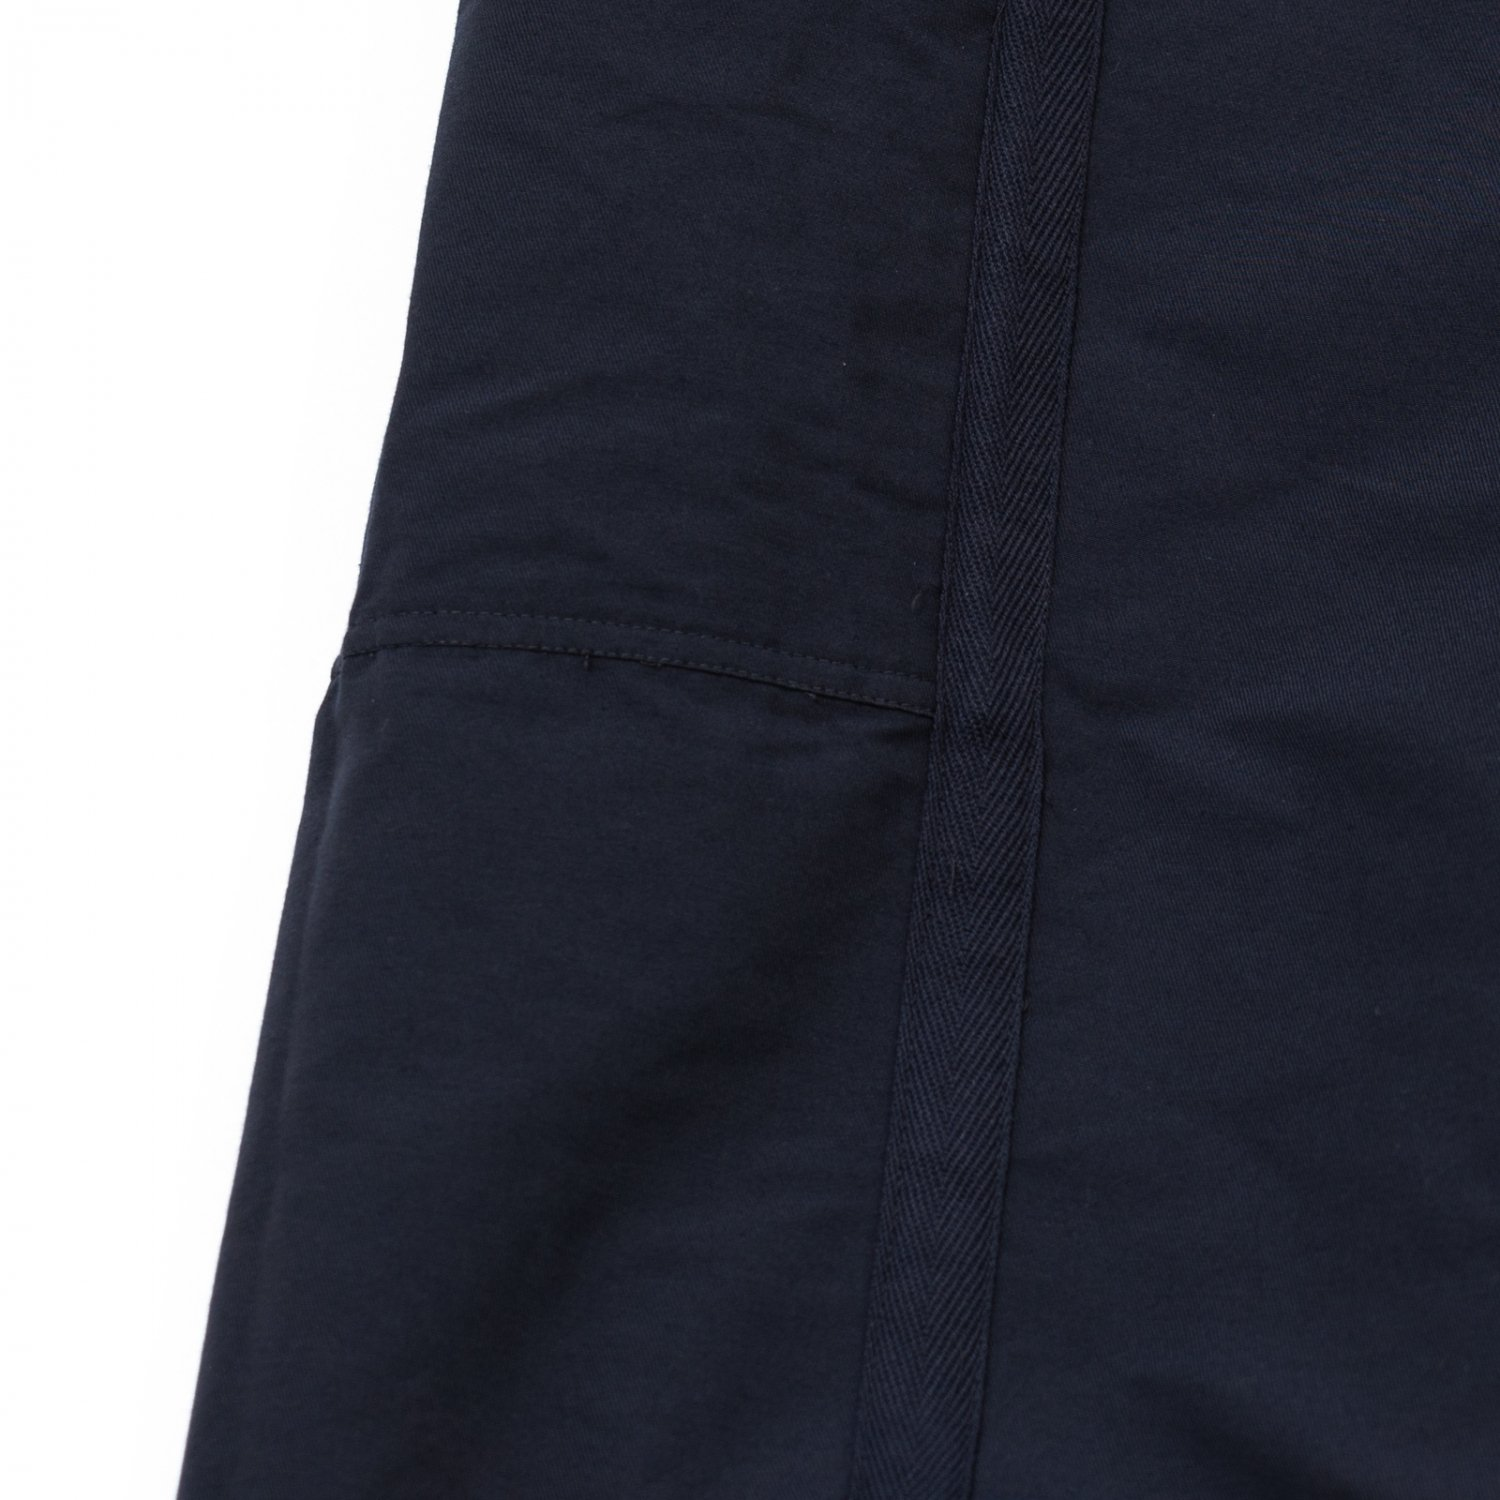 ts(s) * Nylon-Monofilament&Cotton Double Face Cloth Reversible Seam Taping East Pants * Navy